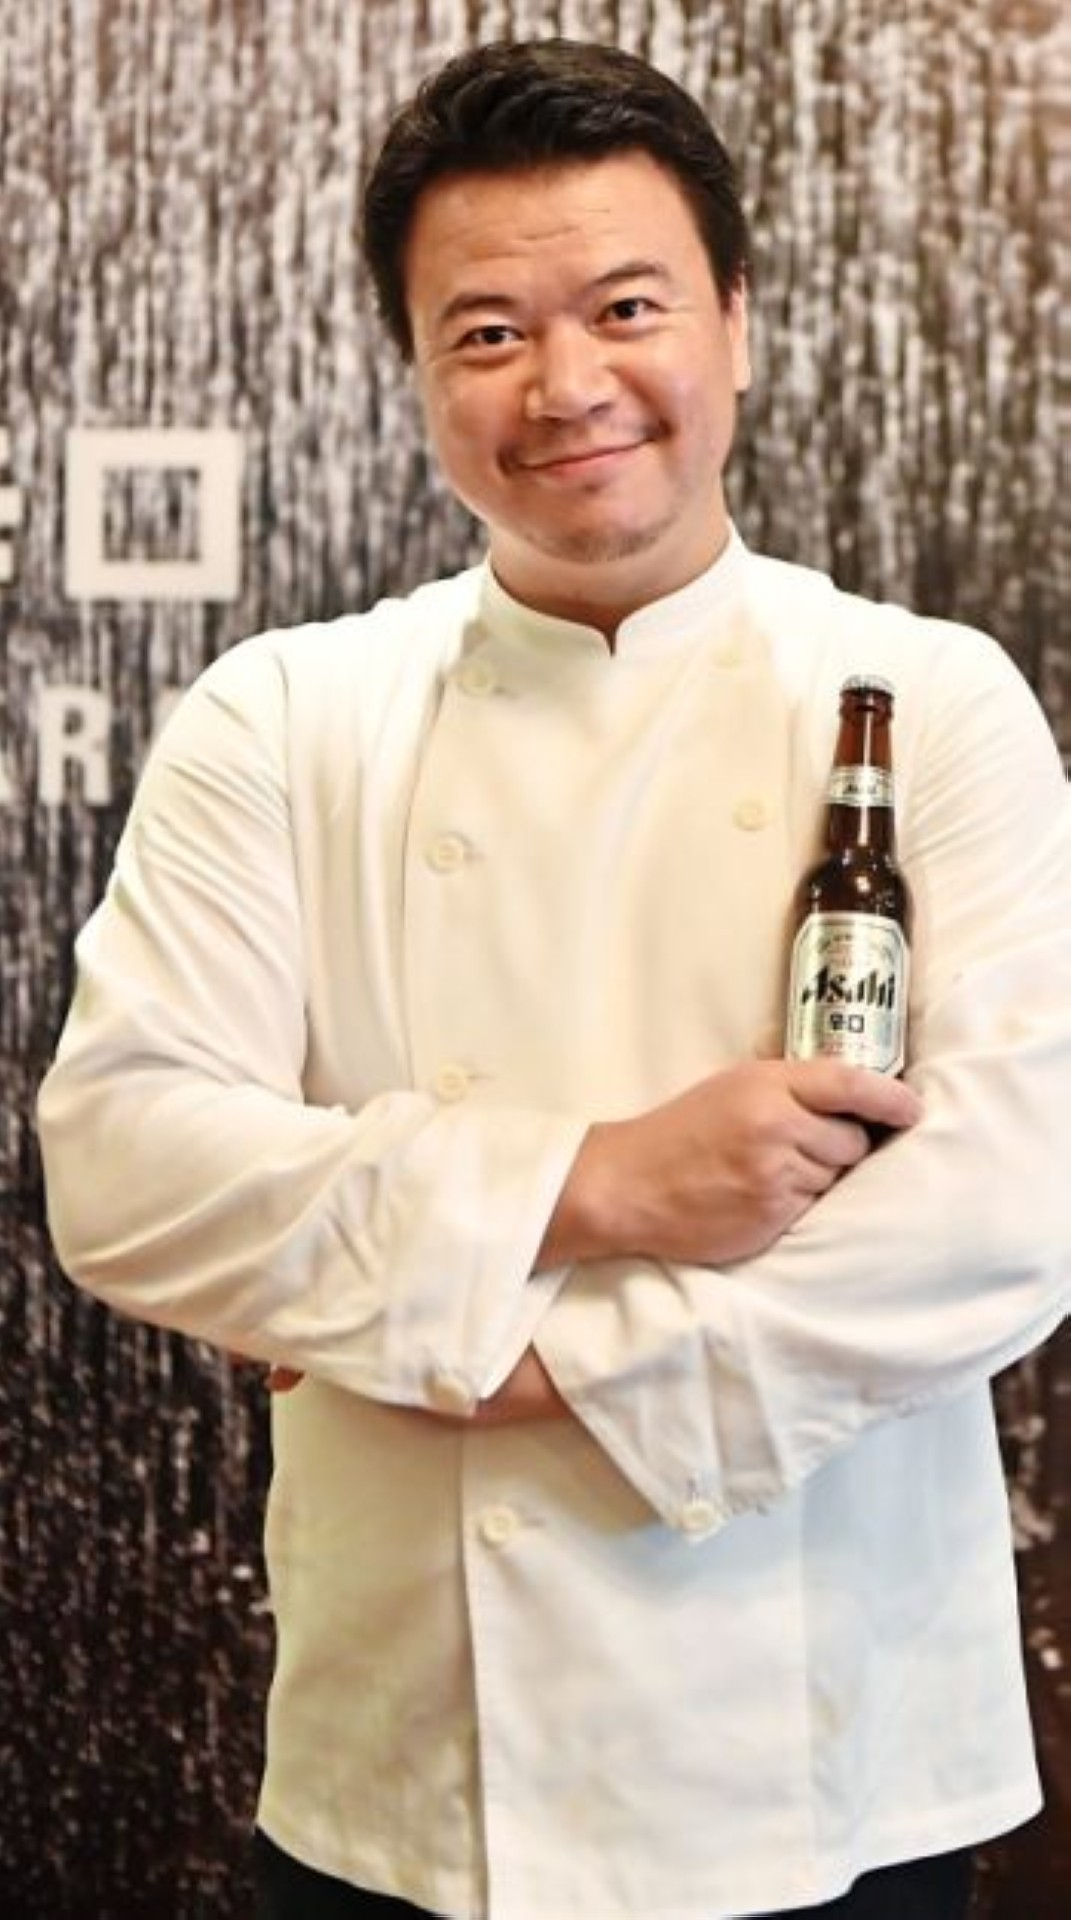 Kamimura's first beer was the Asahi Super Dry and he still enjoys it after a long day in the kitchen.